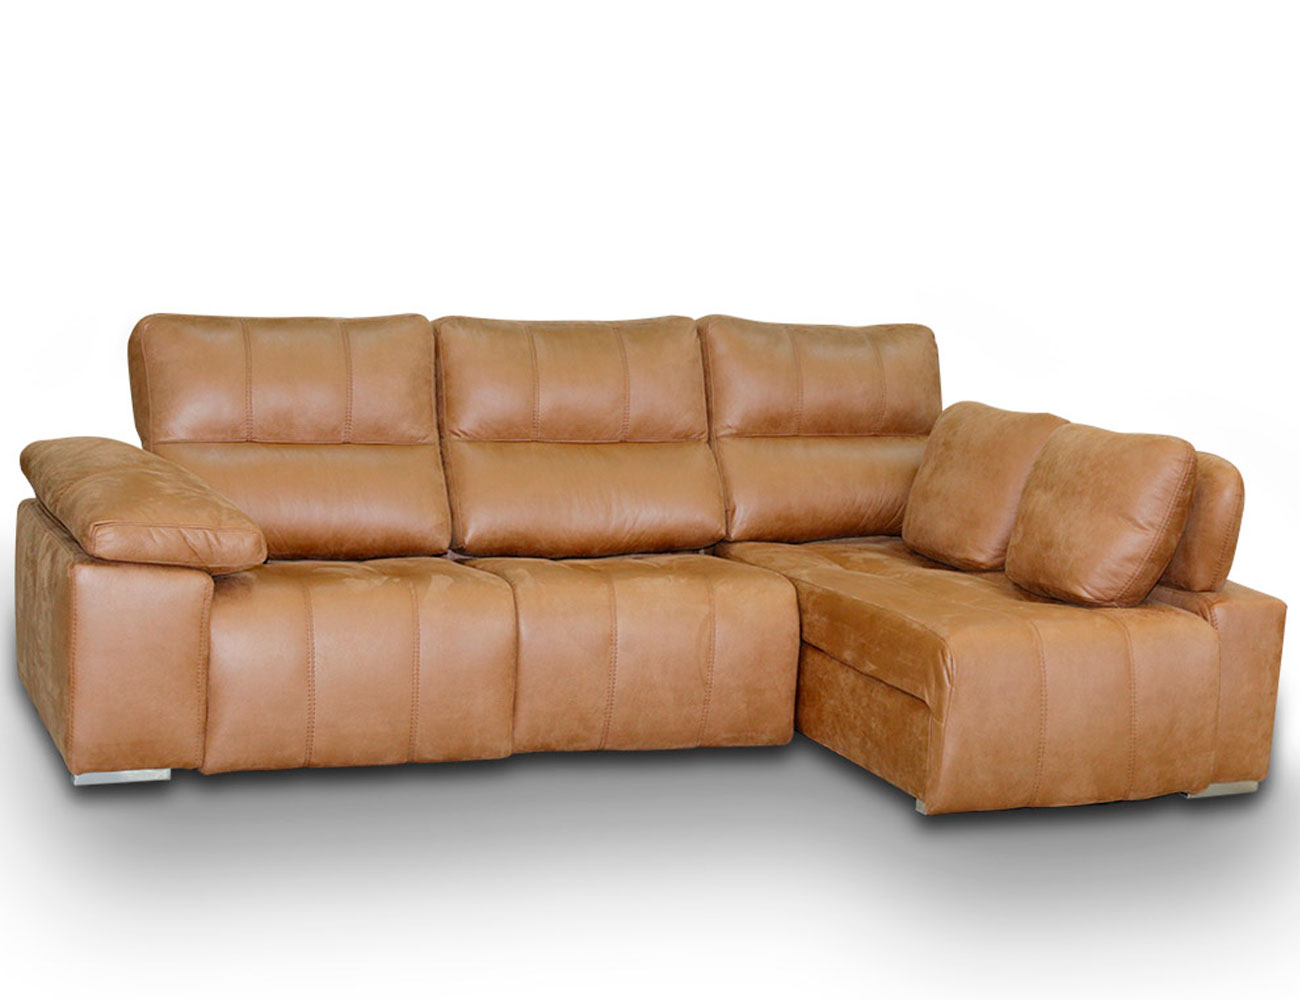 Sofa chaiselongue relax 2 motores anti manchas51